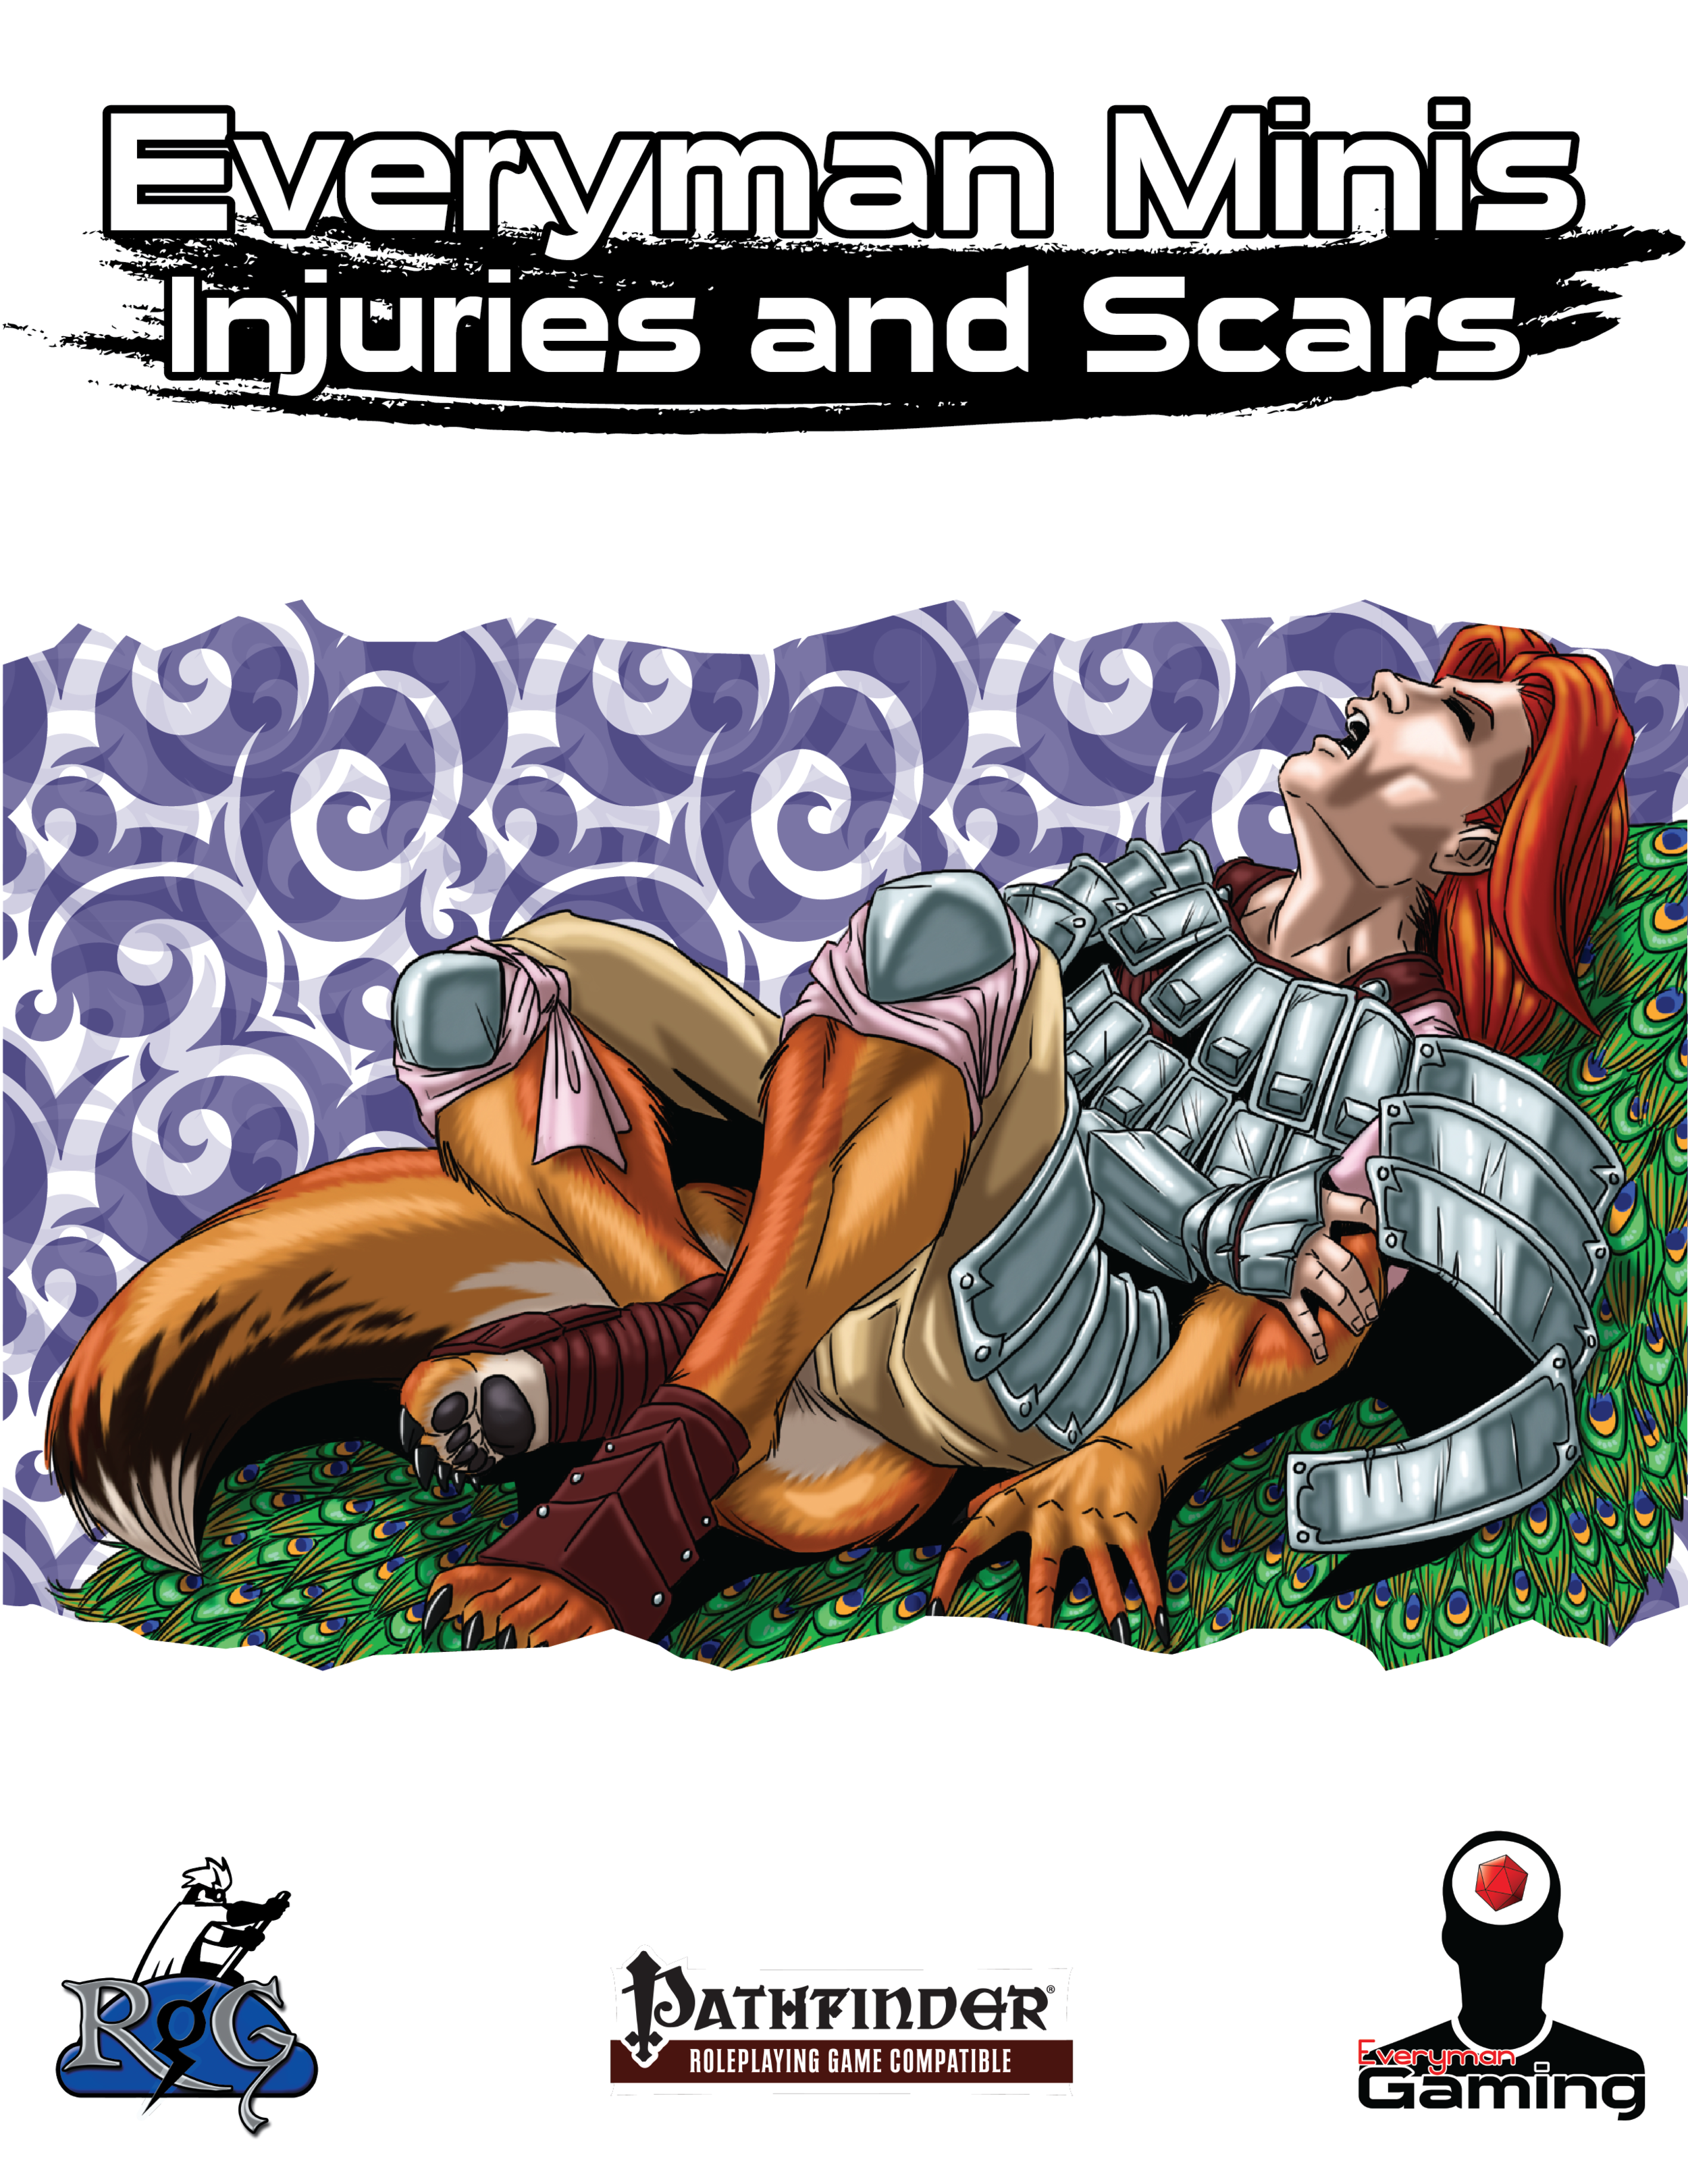 31 EMM Injuries and Scars.png